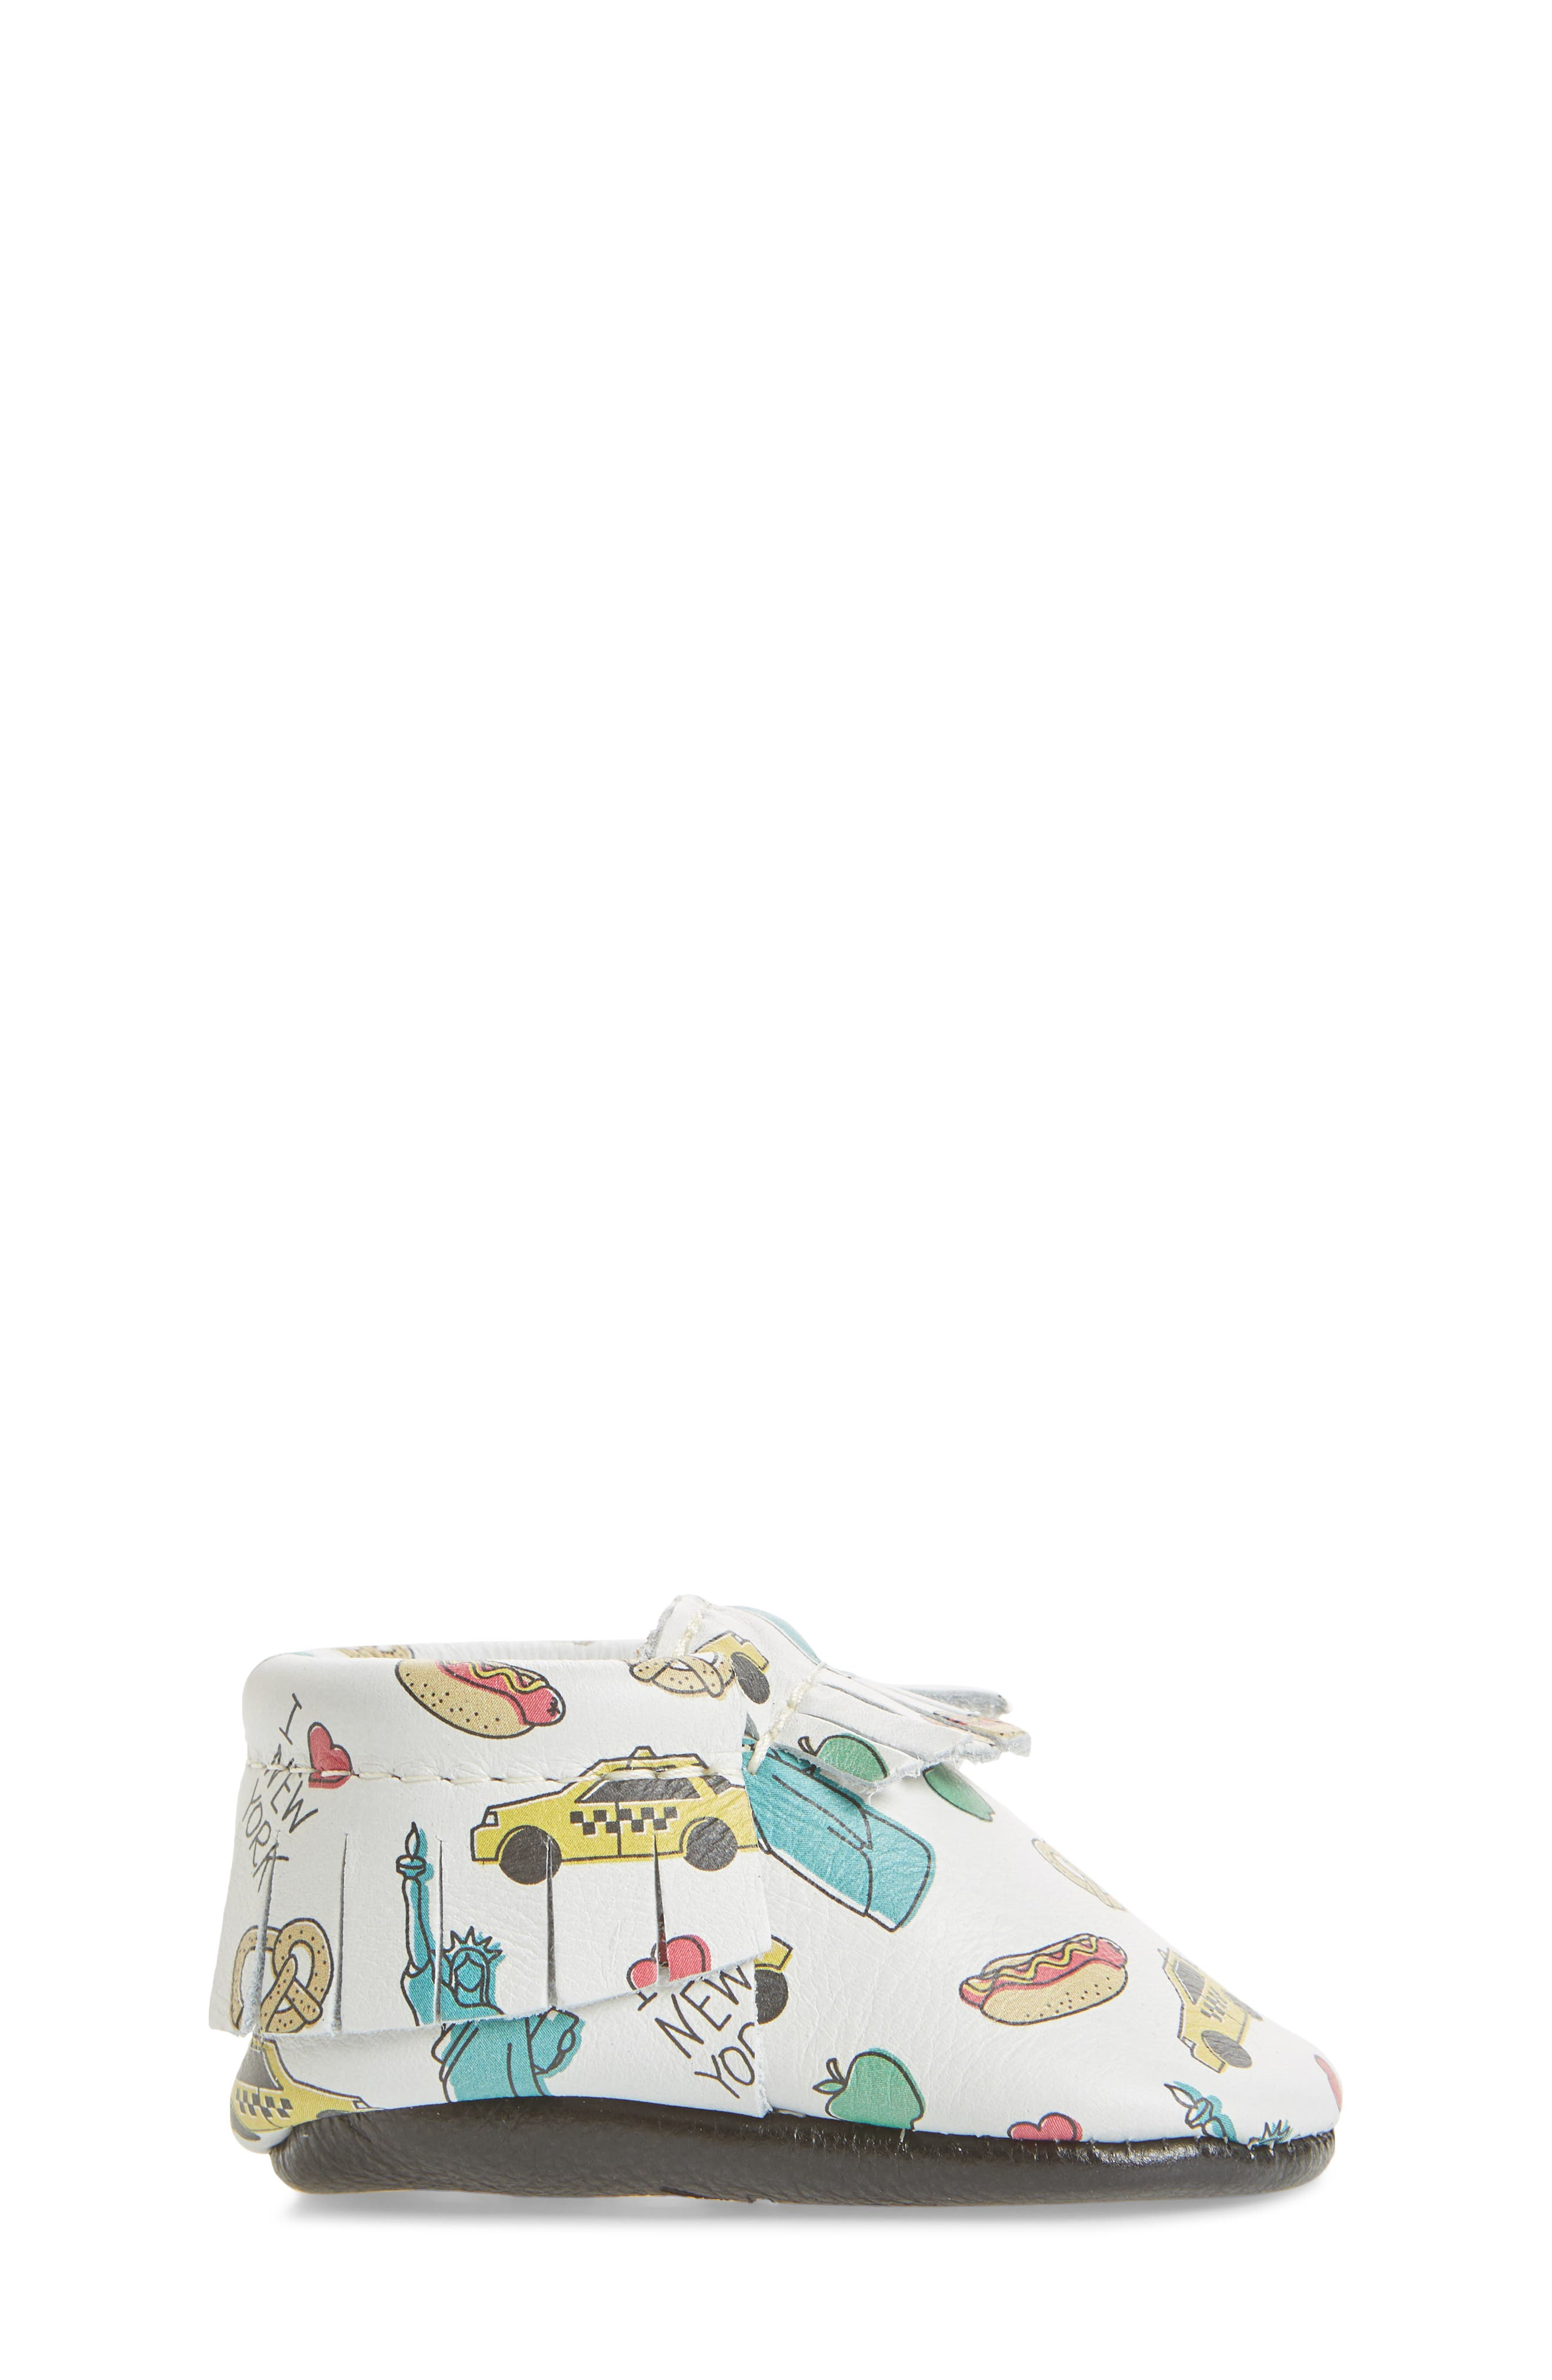 Big Apple Moccasin Bootie,                             Alternate thumbnail 3, color,                             PRINT LEATHER